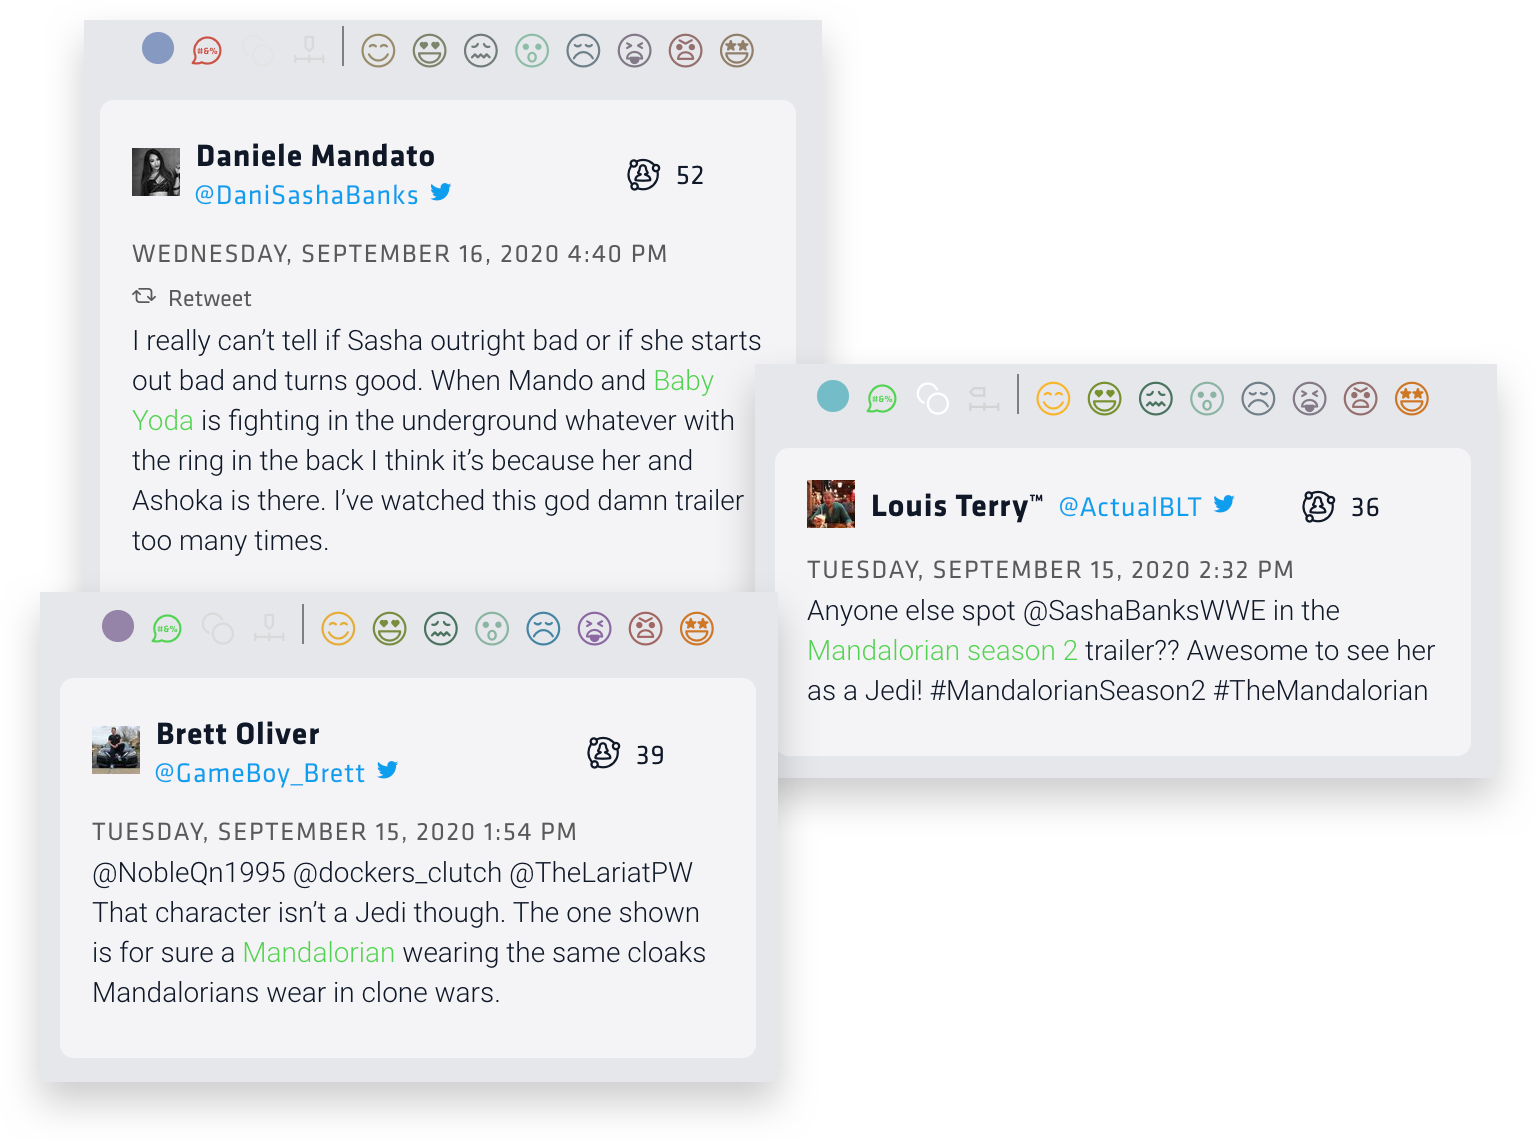 Nuvi's real-time social listening monitoring found several tweets about Sasha Banks. Here are three. This first thinks her character will either be outright bad or she'll start bad and become good. She also thinks a scene from the trailer is because of the character. The second tweet author is just excited to see her there. The third seems to think she is a Mandalorian.